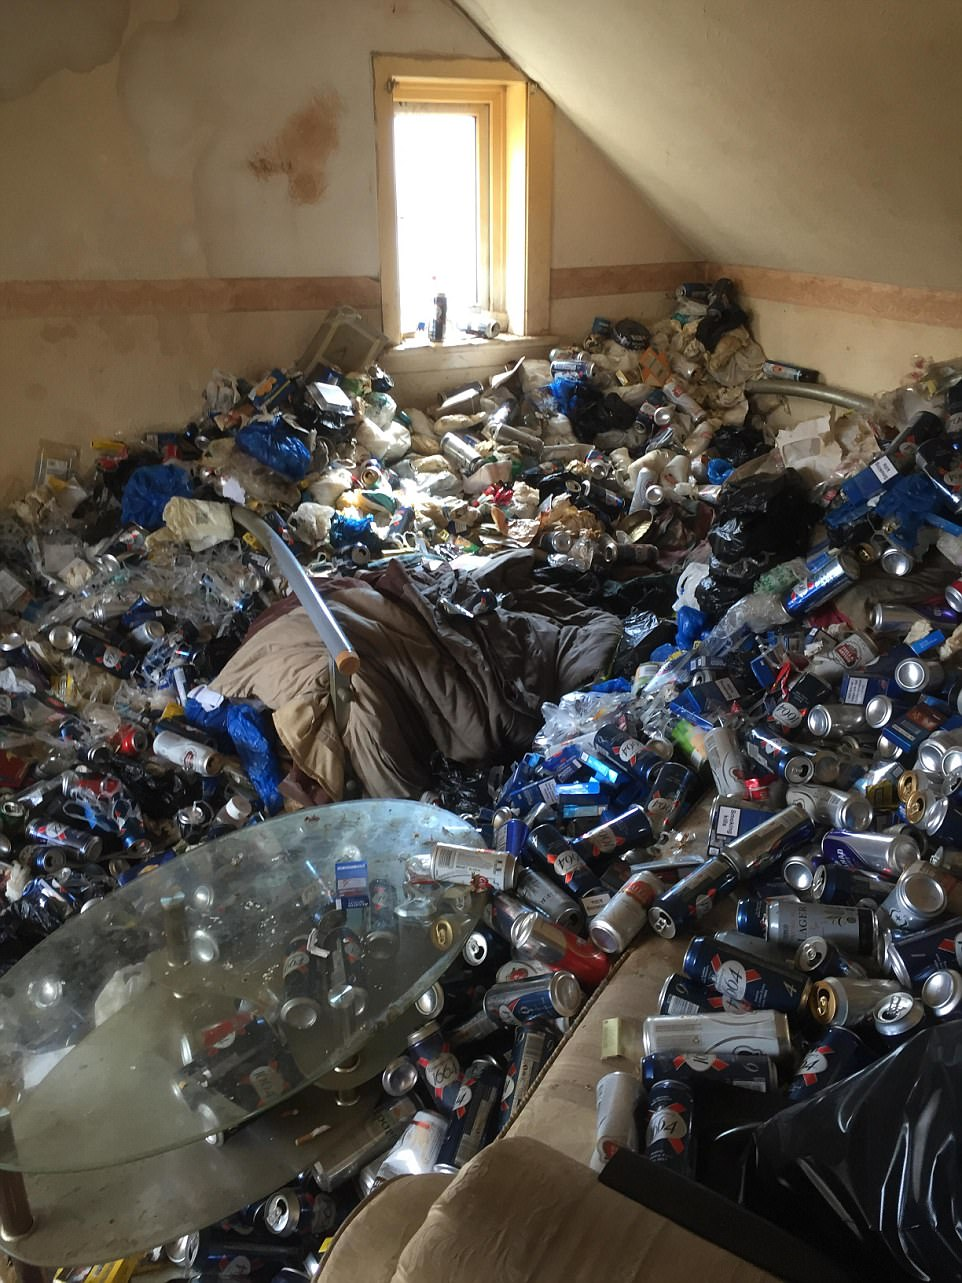 Maidstone landlord returns to flat buried in empty cans